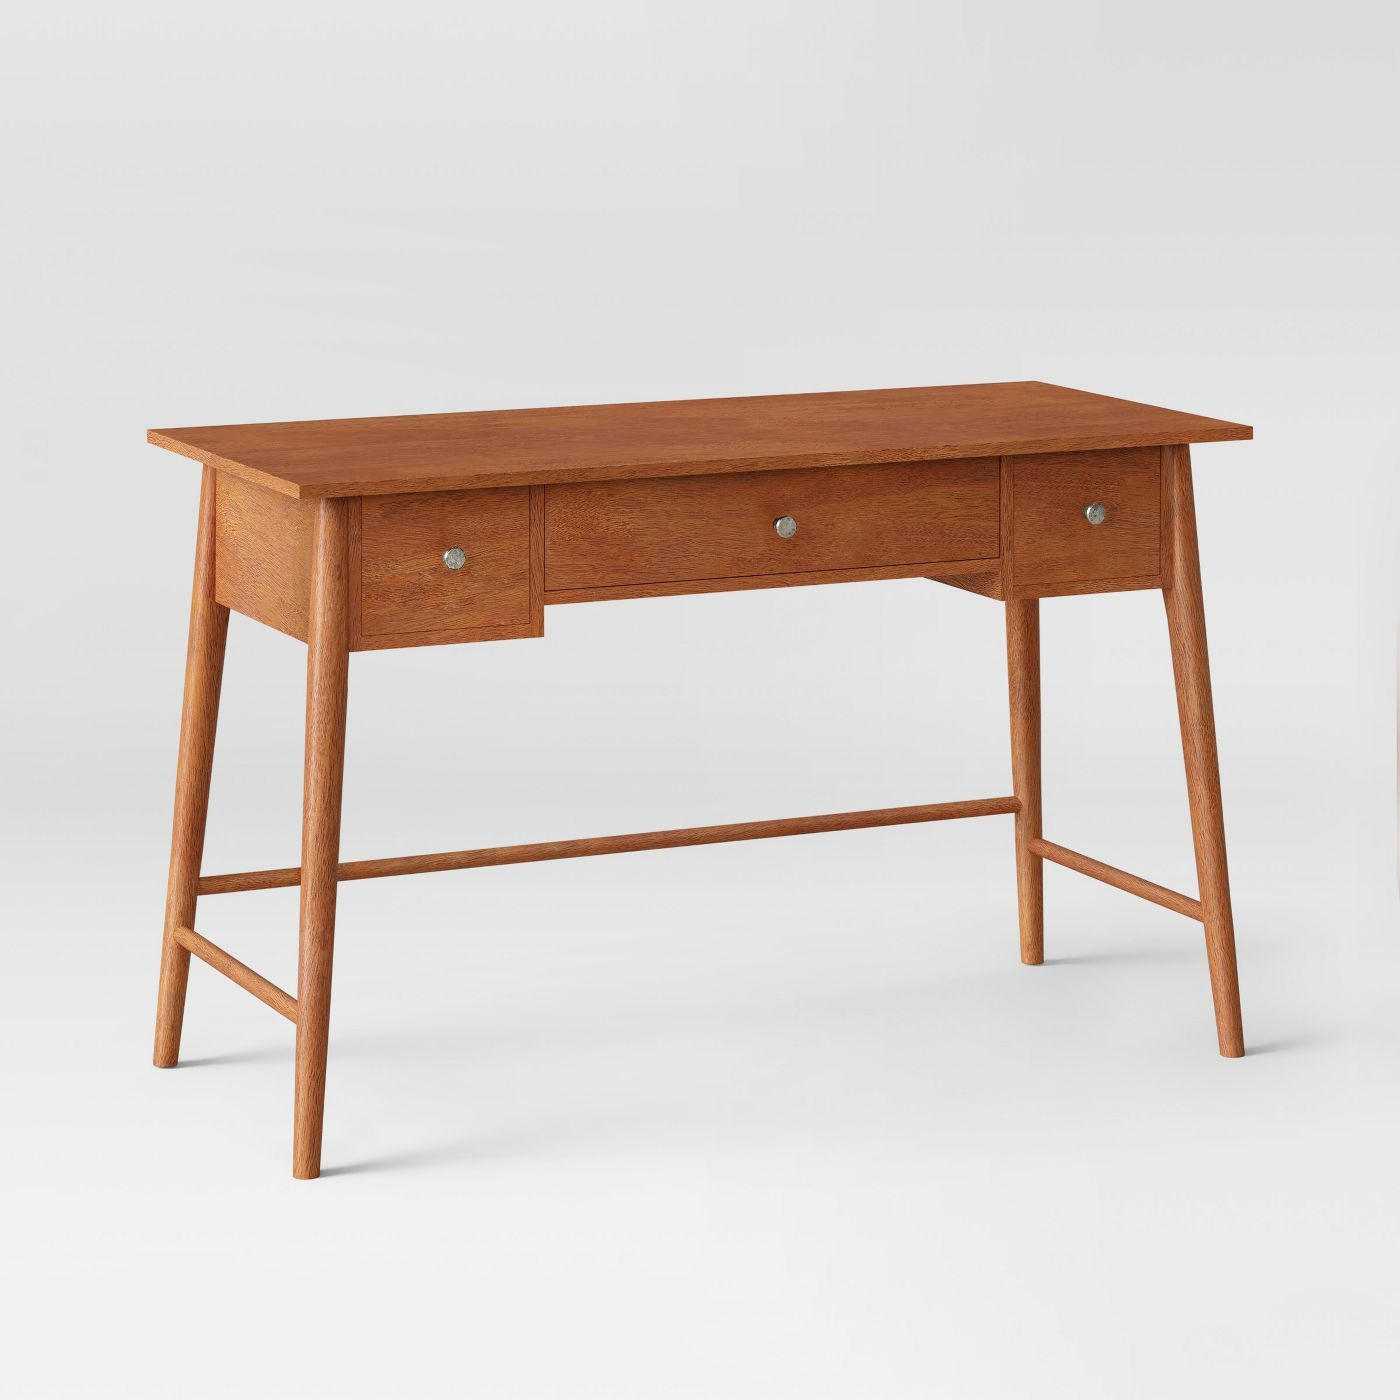 Amherst Mid Century Modern Writing Desk Brown Project 62 In 2020 Mid Century Modern Desk Writing Desk Mid Century Desk